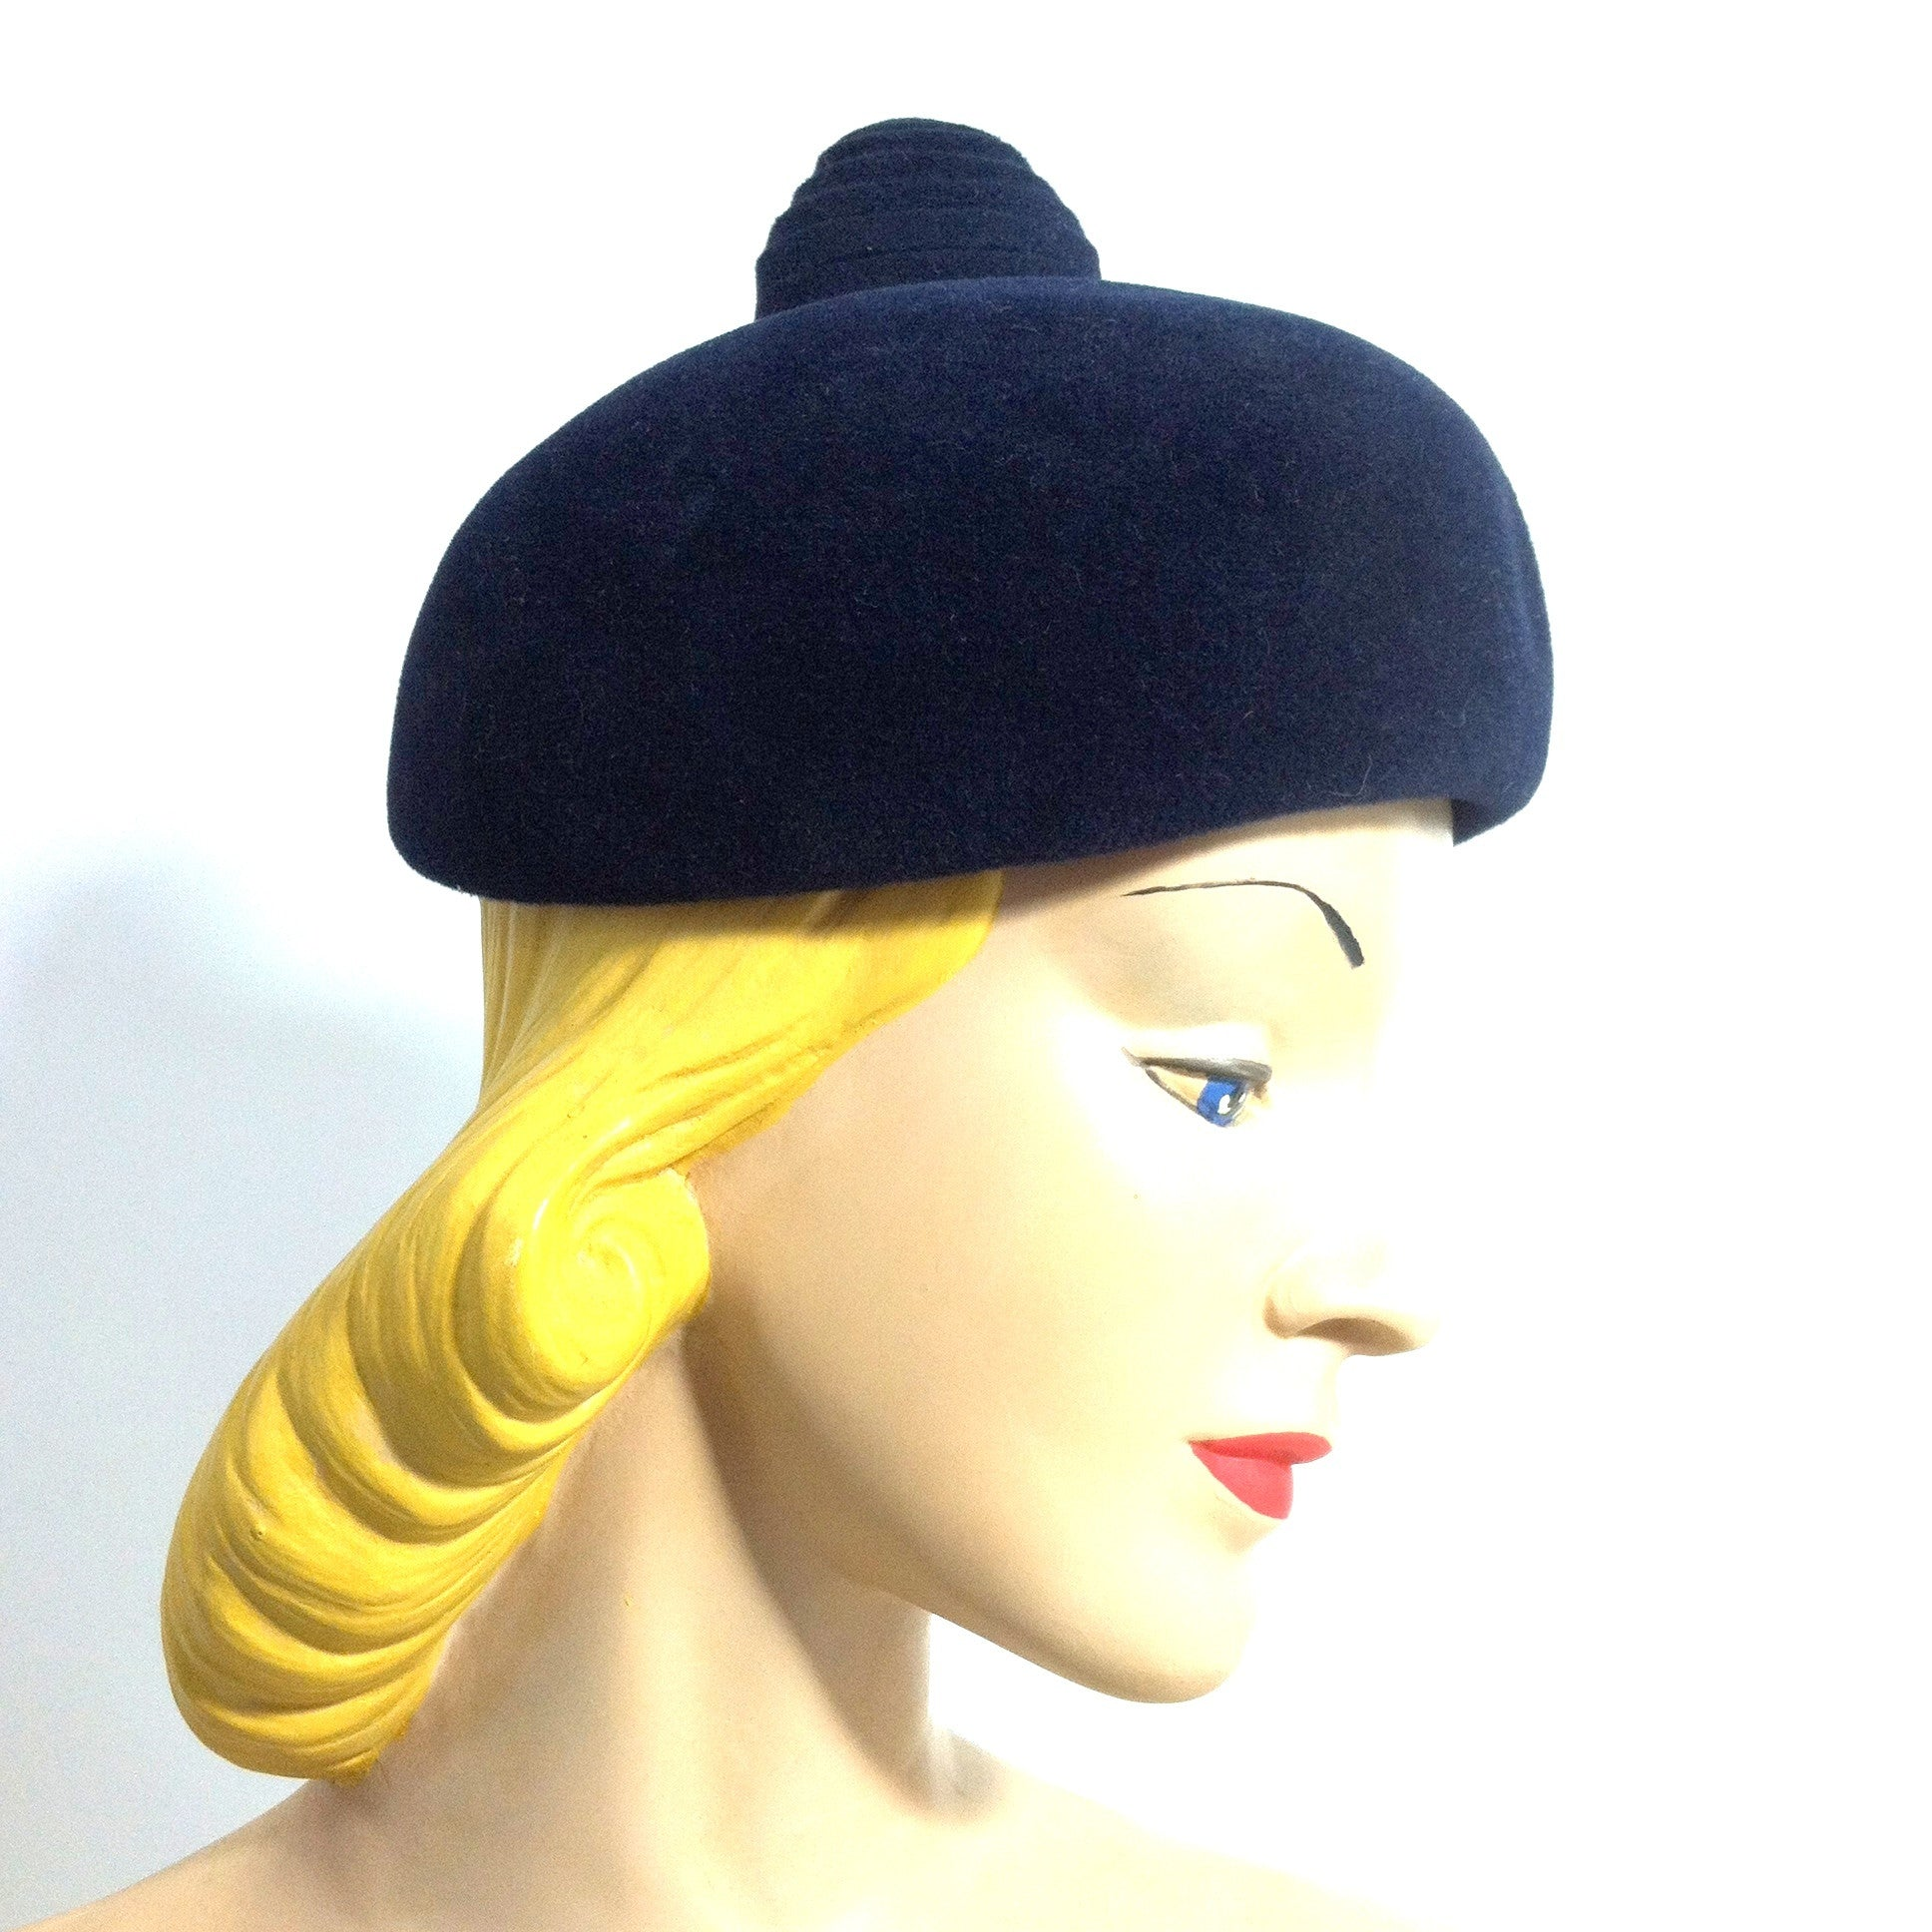 Navy Blue Felted Fur Mod Domed Hat w/ Swirled Fob Top circa 1960s Dorothea's Closet Vintage Hat